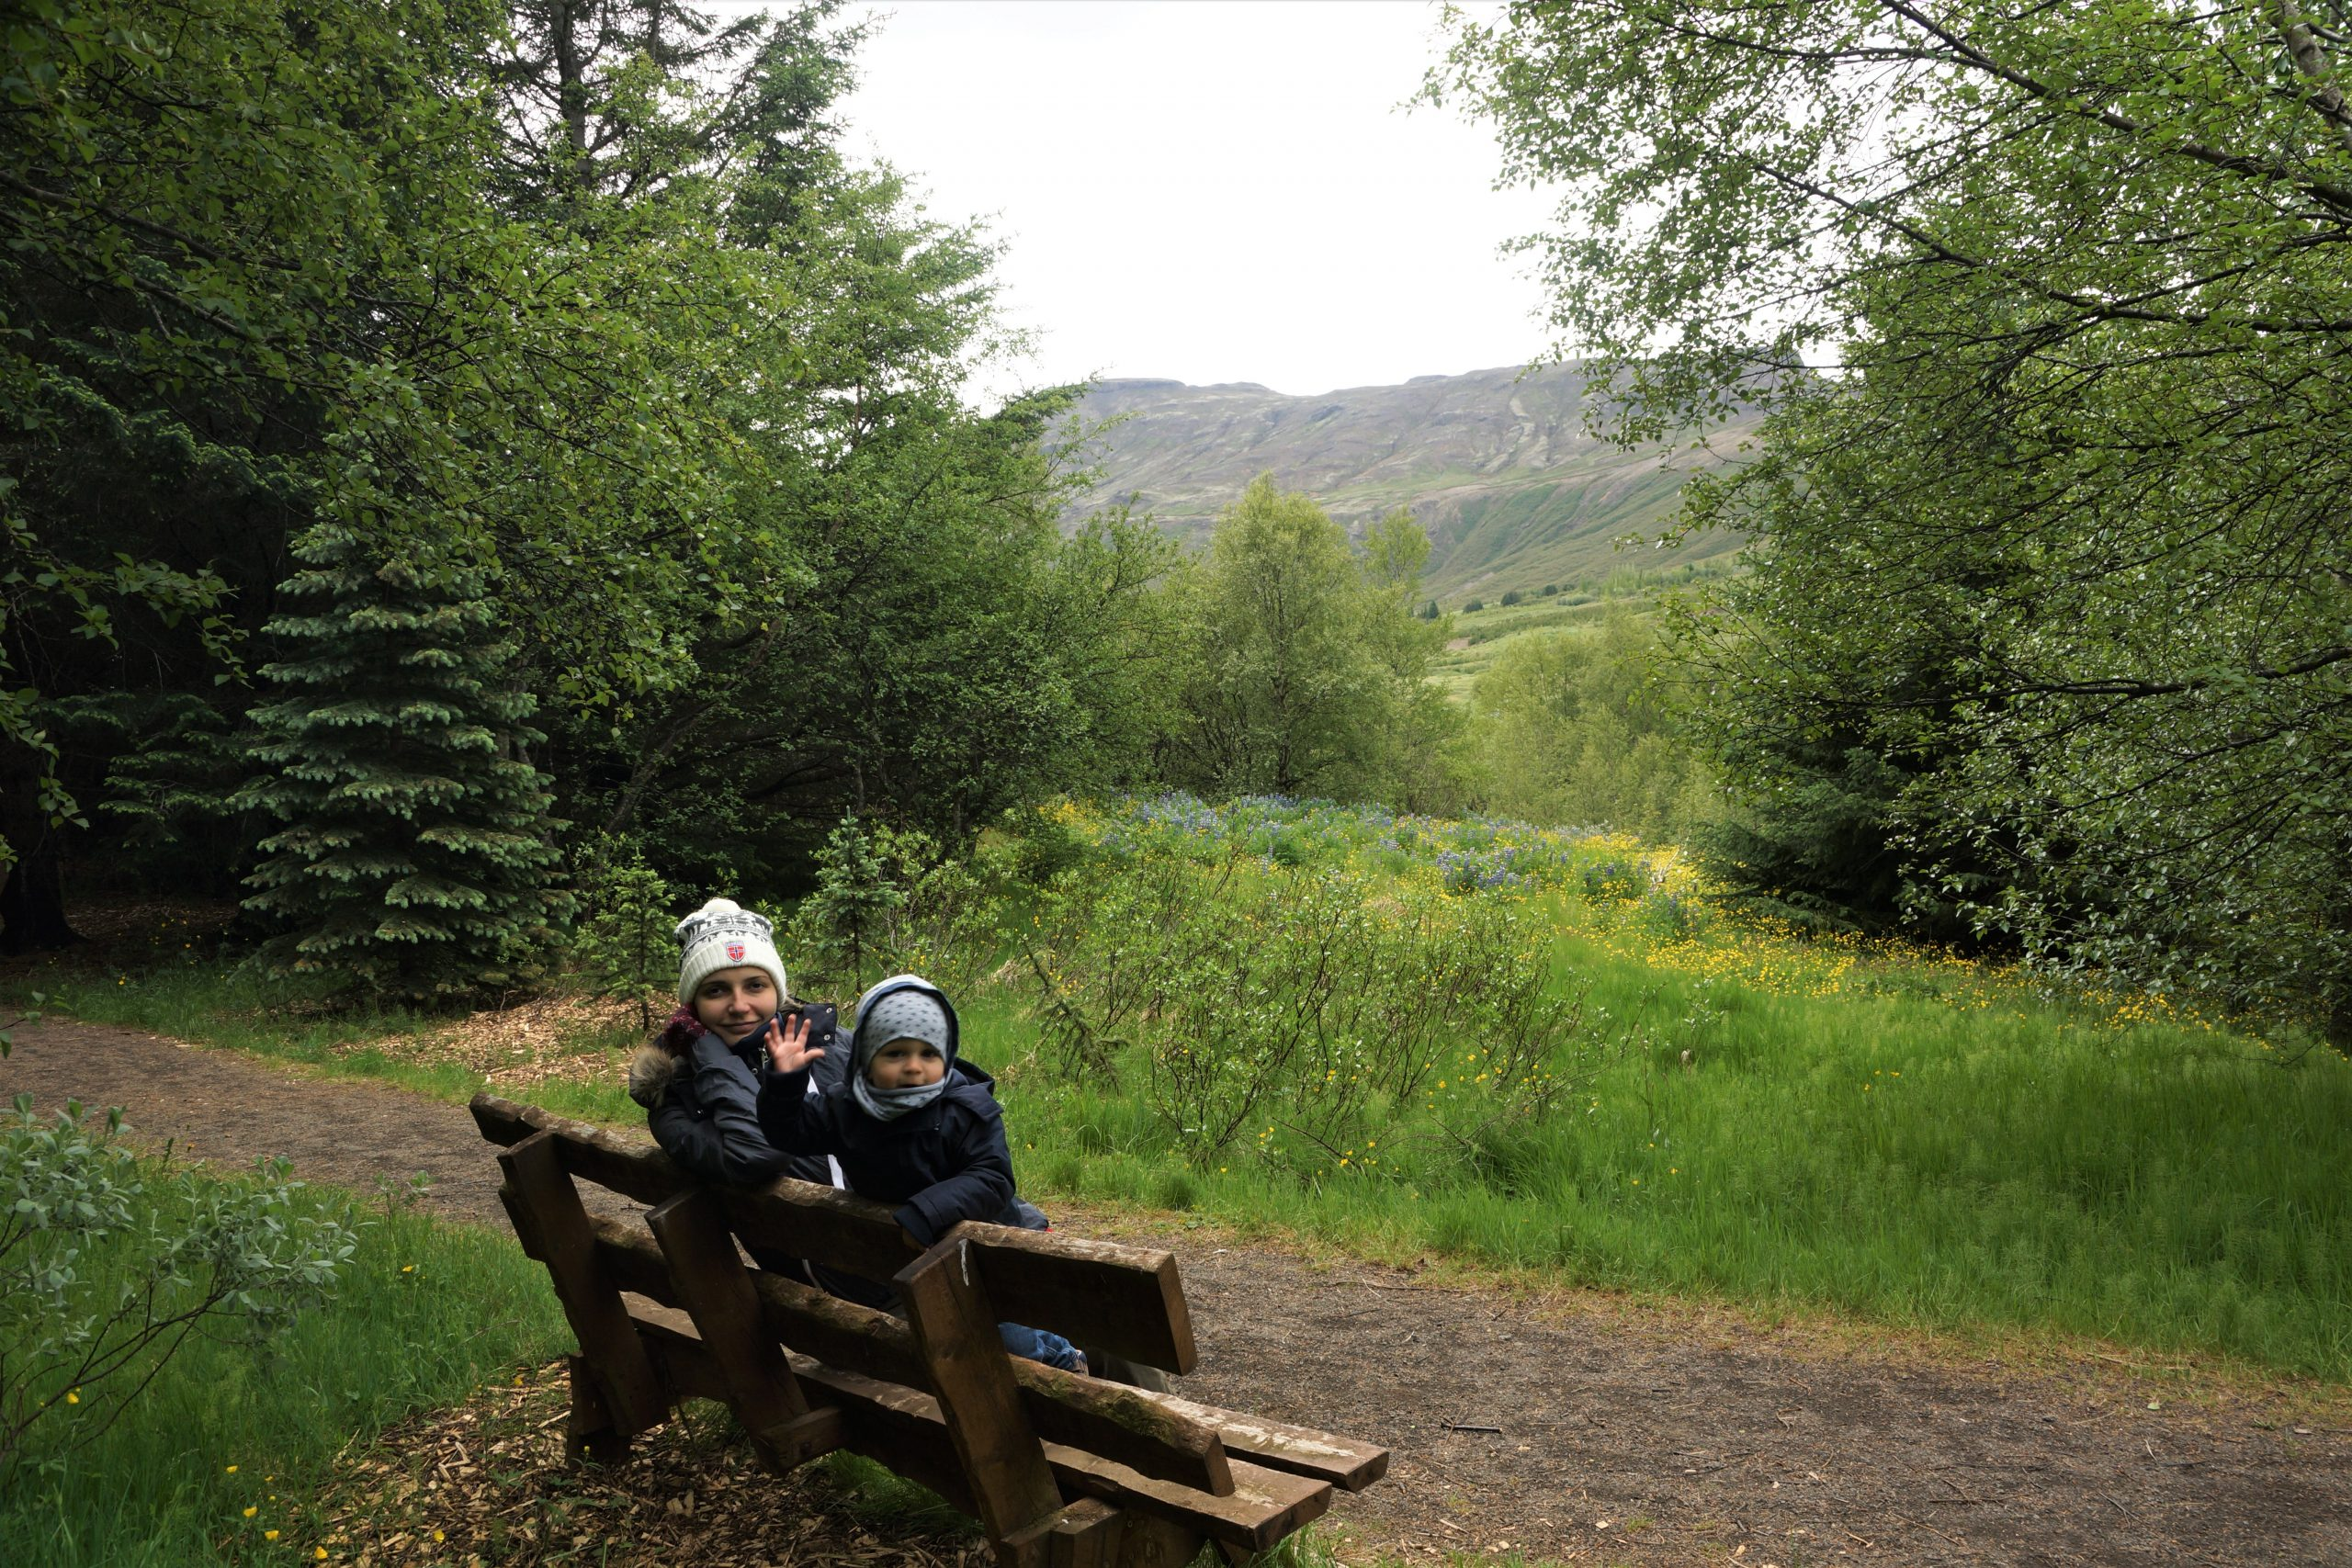 mother and toddler sitting on bench in nature